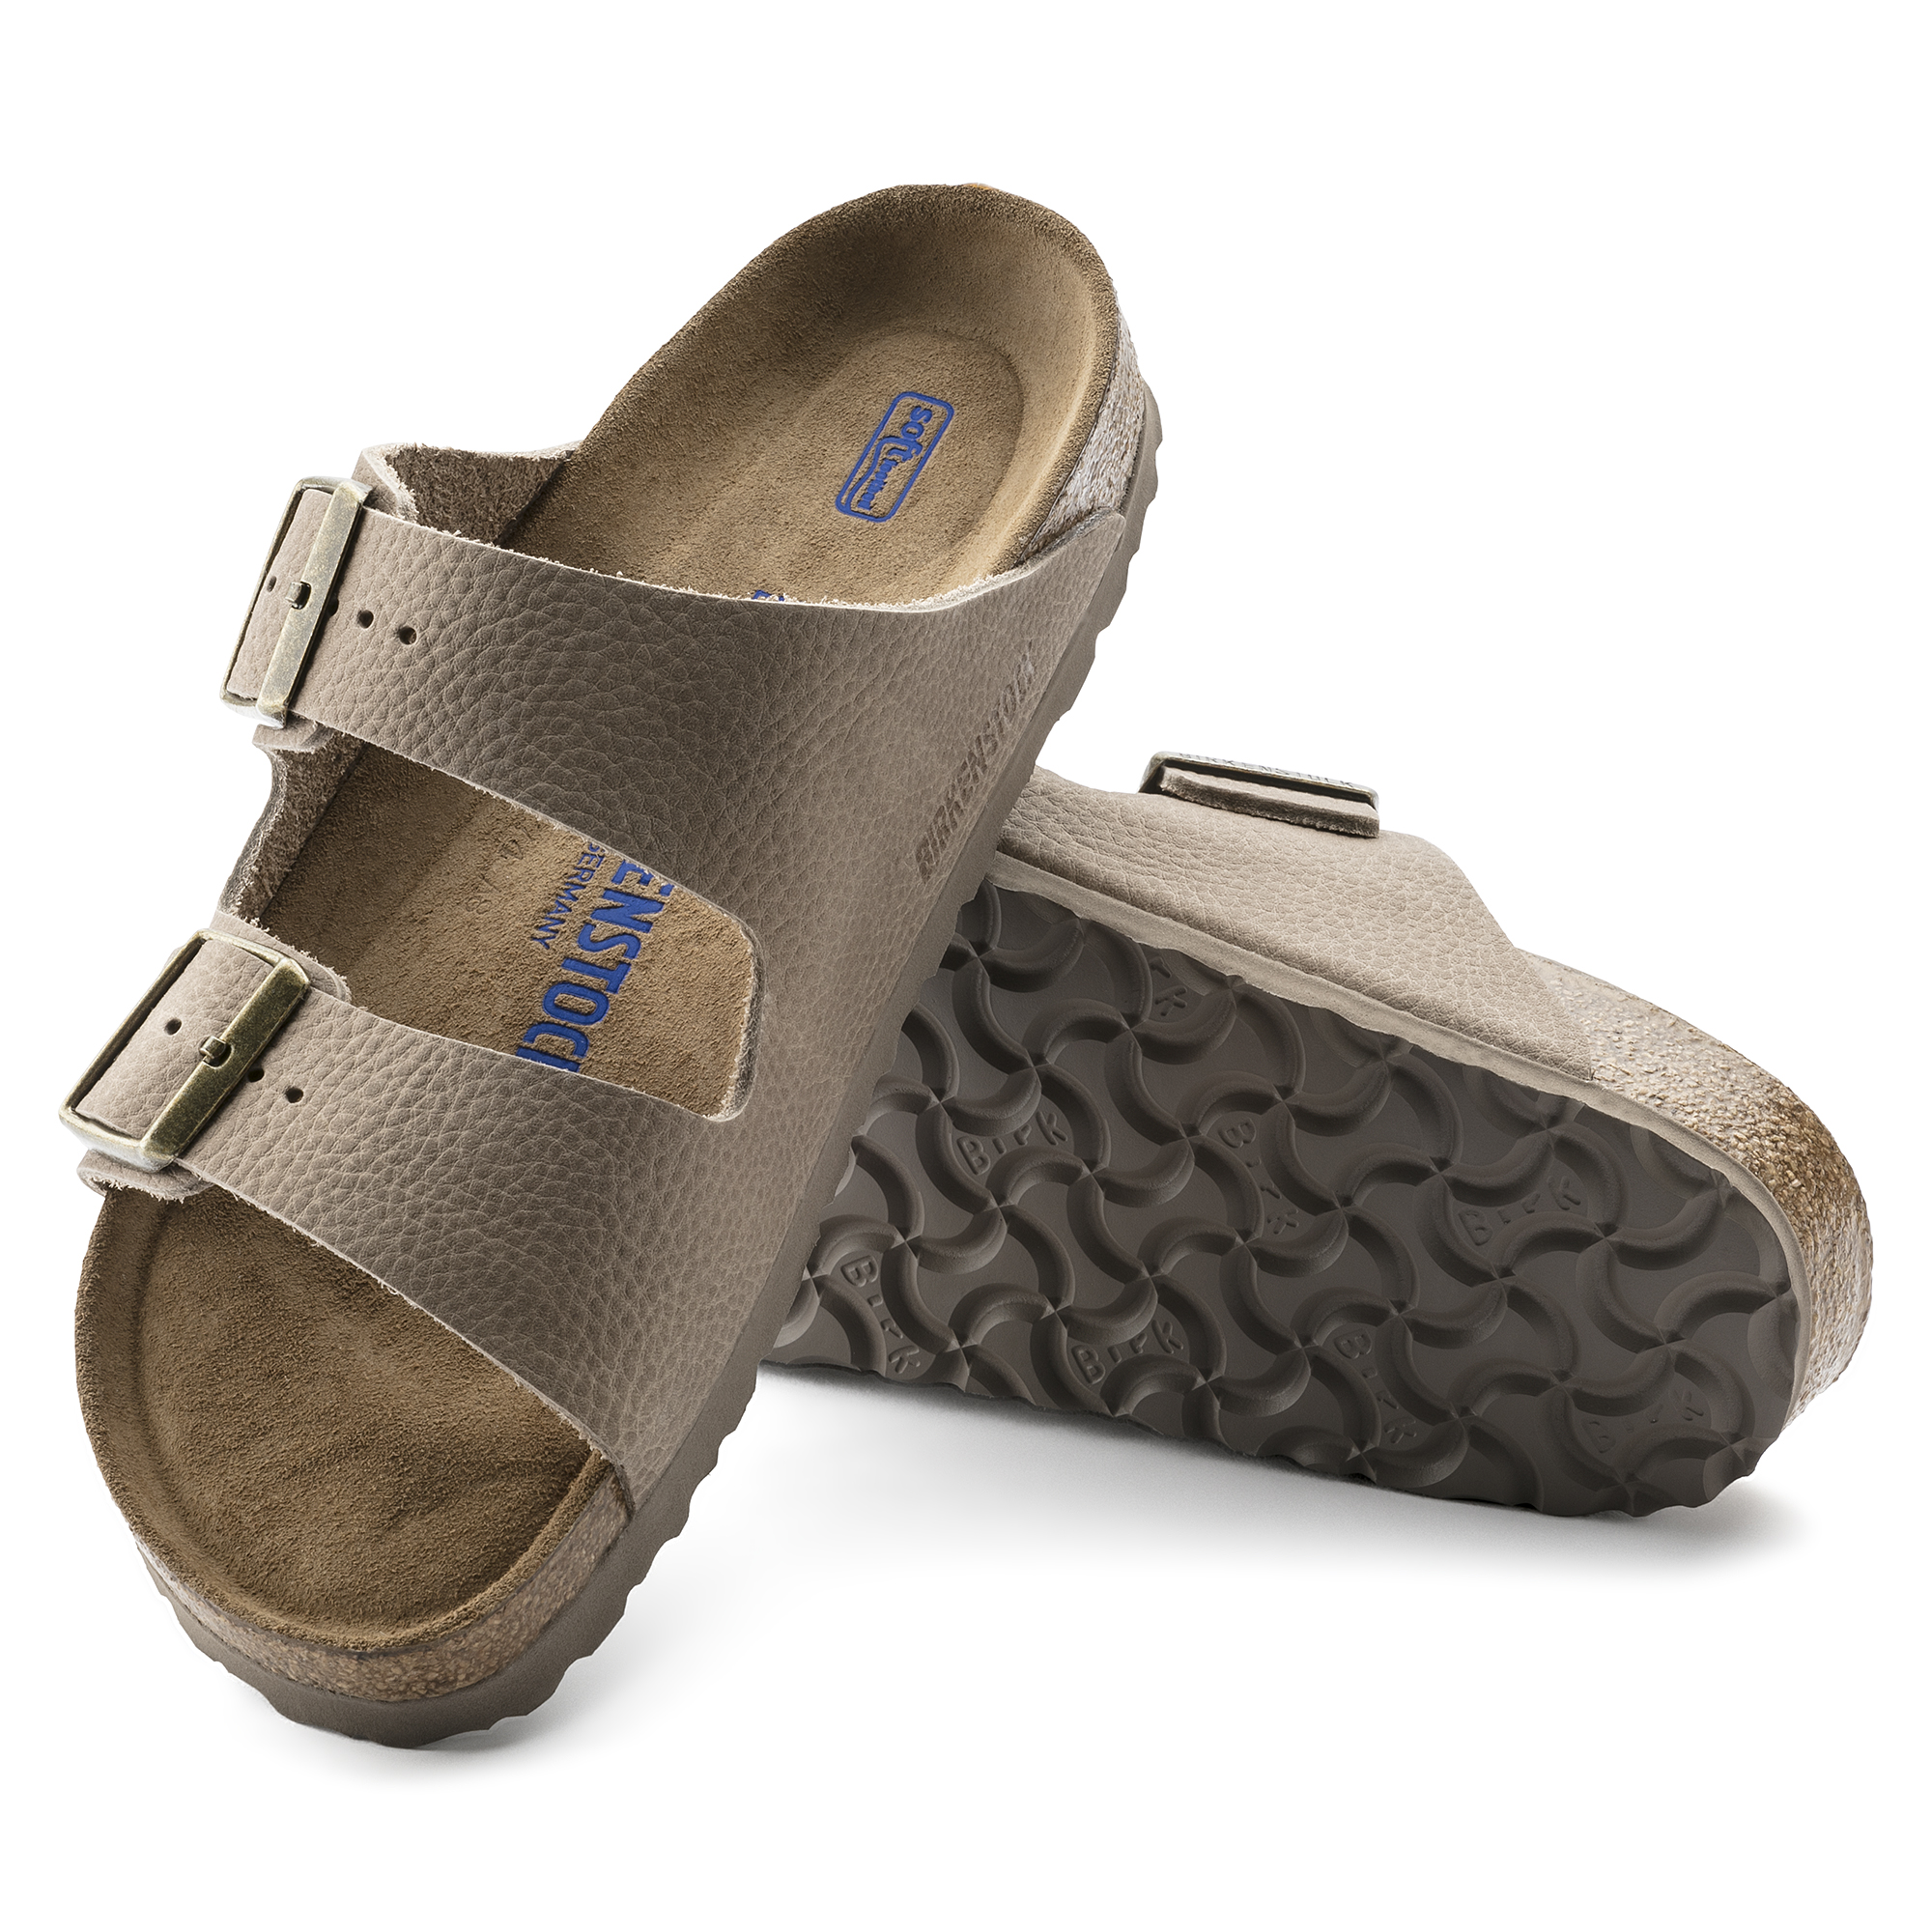 BIRKENSTOCK ARIZONA SFB STEER NUBUCK LEATHER